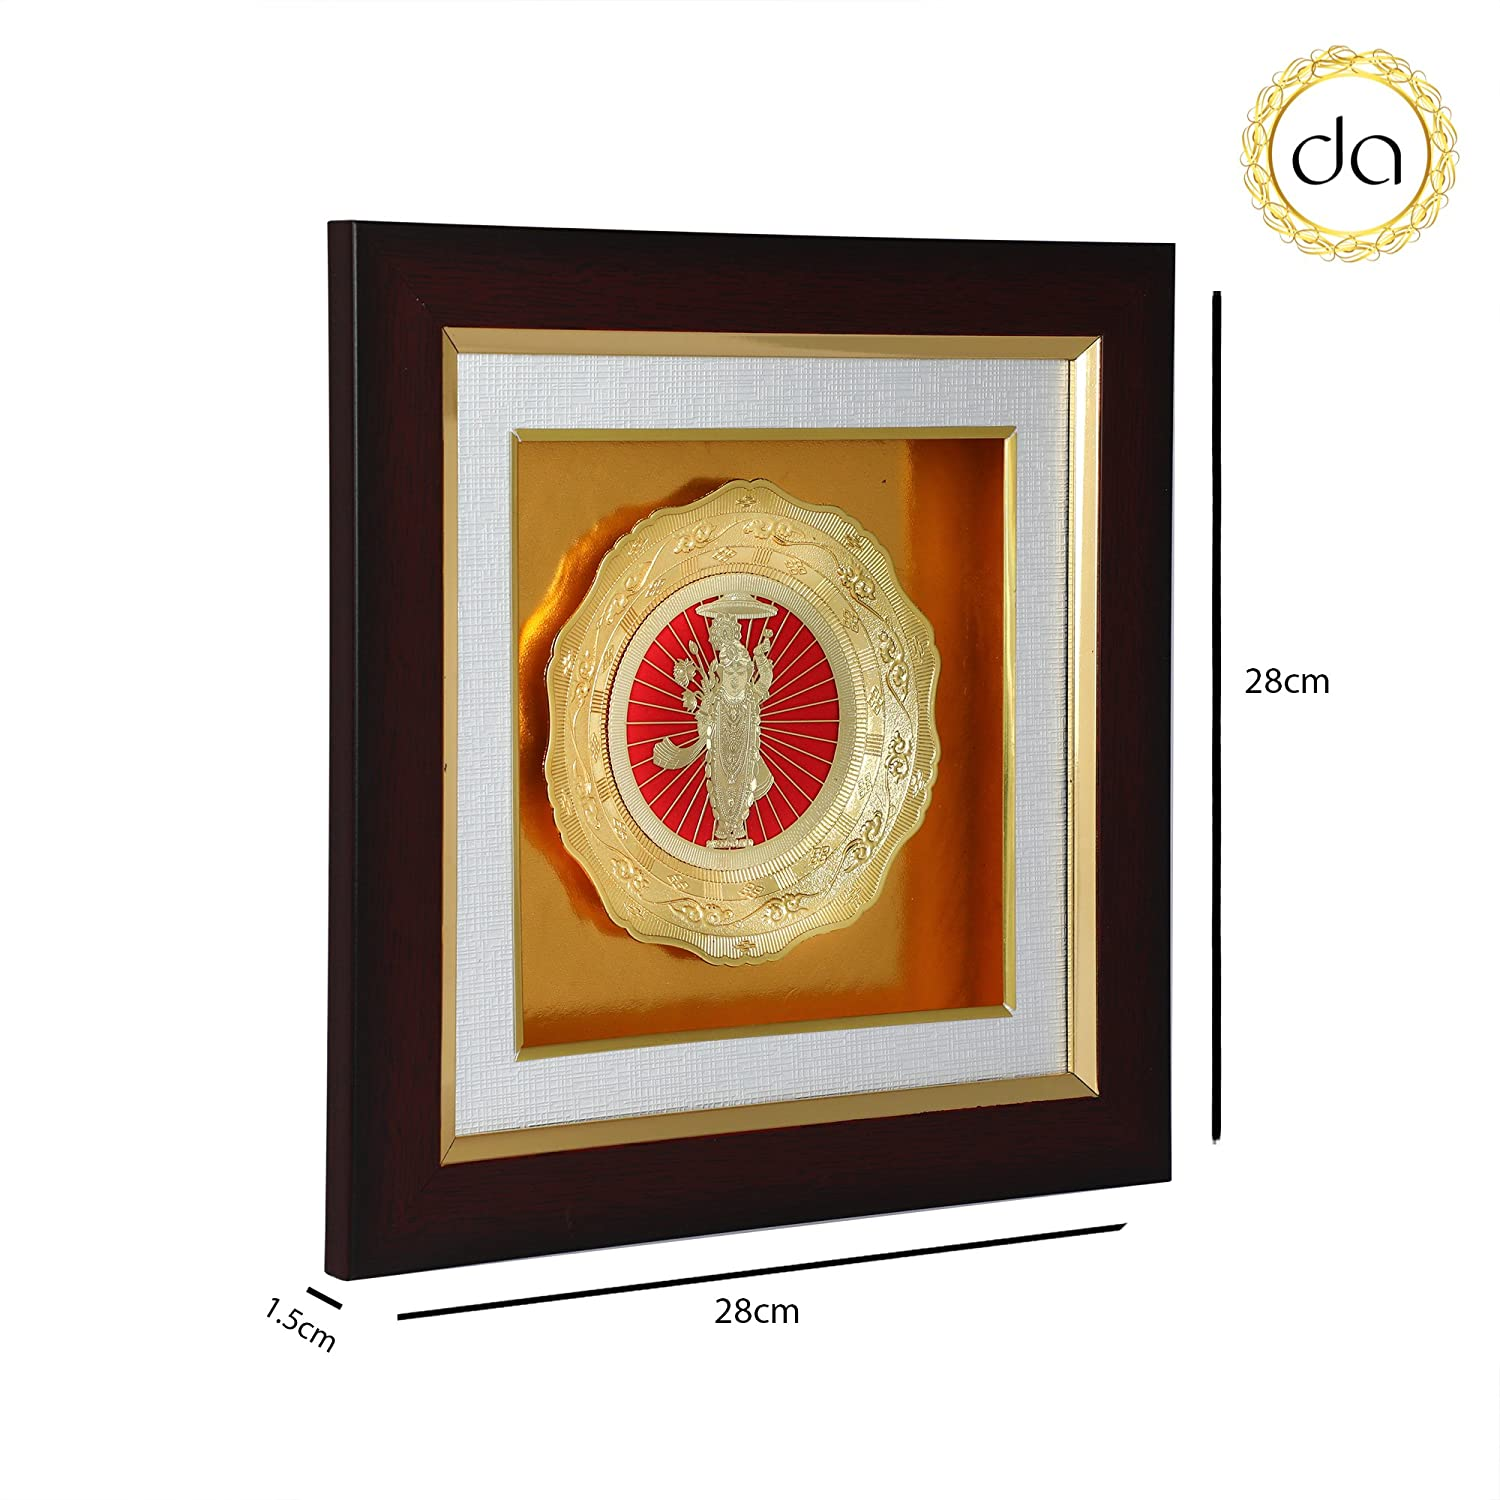 c03b3f10fbe4 Buy Dev Aastha Pure Silver Plated Wall Hanging Home Décor Frame Online at  Low Prices in India - Amazon.in